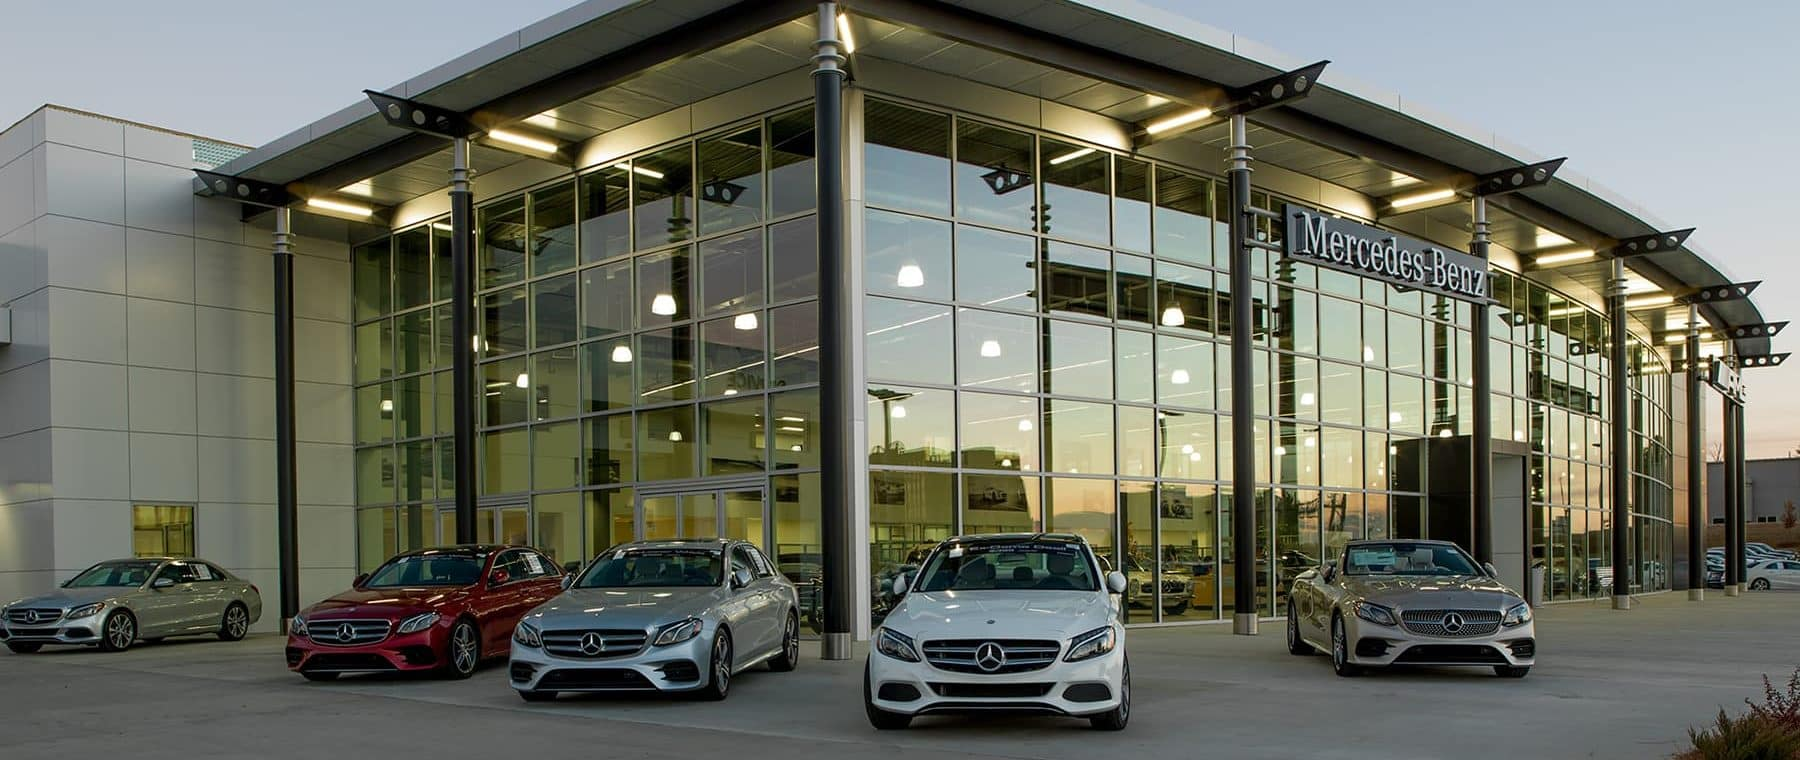 Mercedes benz of jackson mississippi luxury car dealer for Mercedes benz dealers in michigan